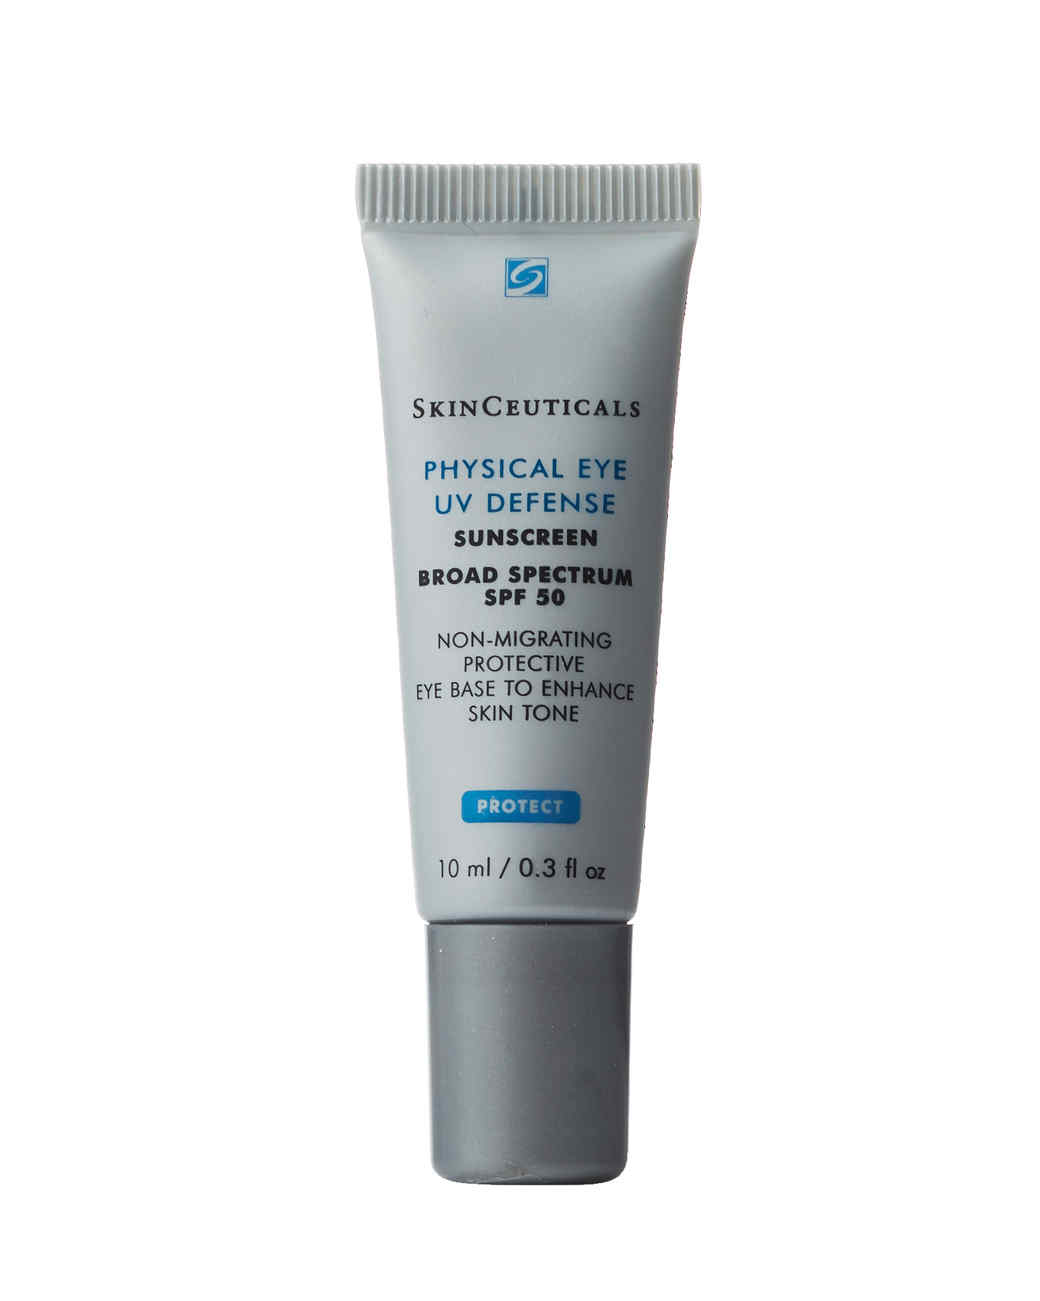 skinceuticals-sunscreen-039-d111082.jpg